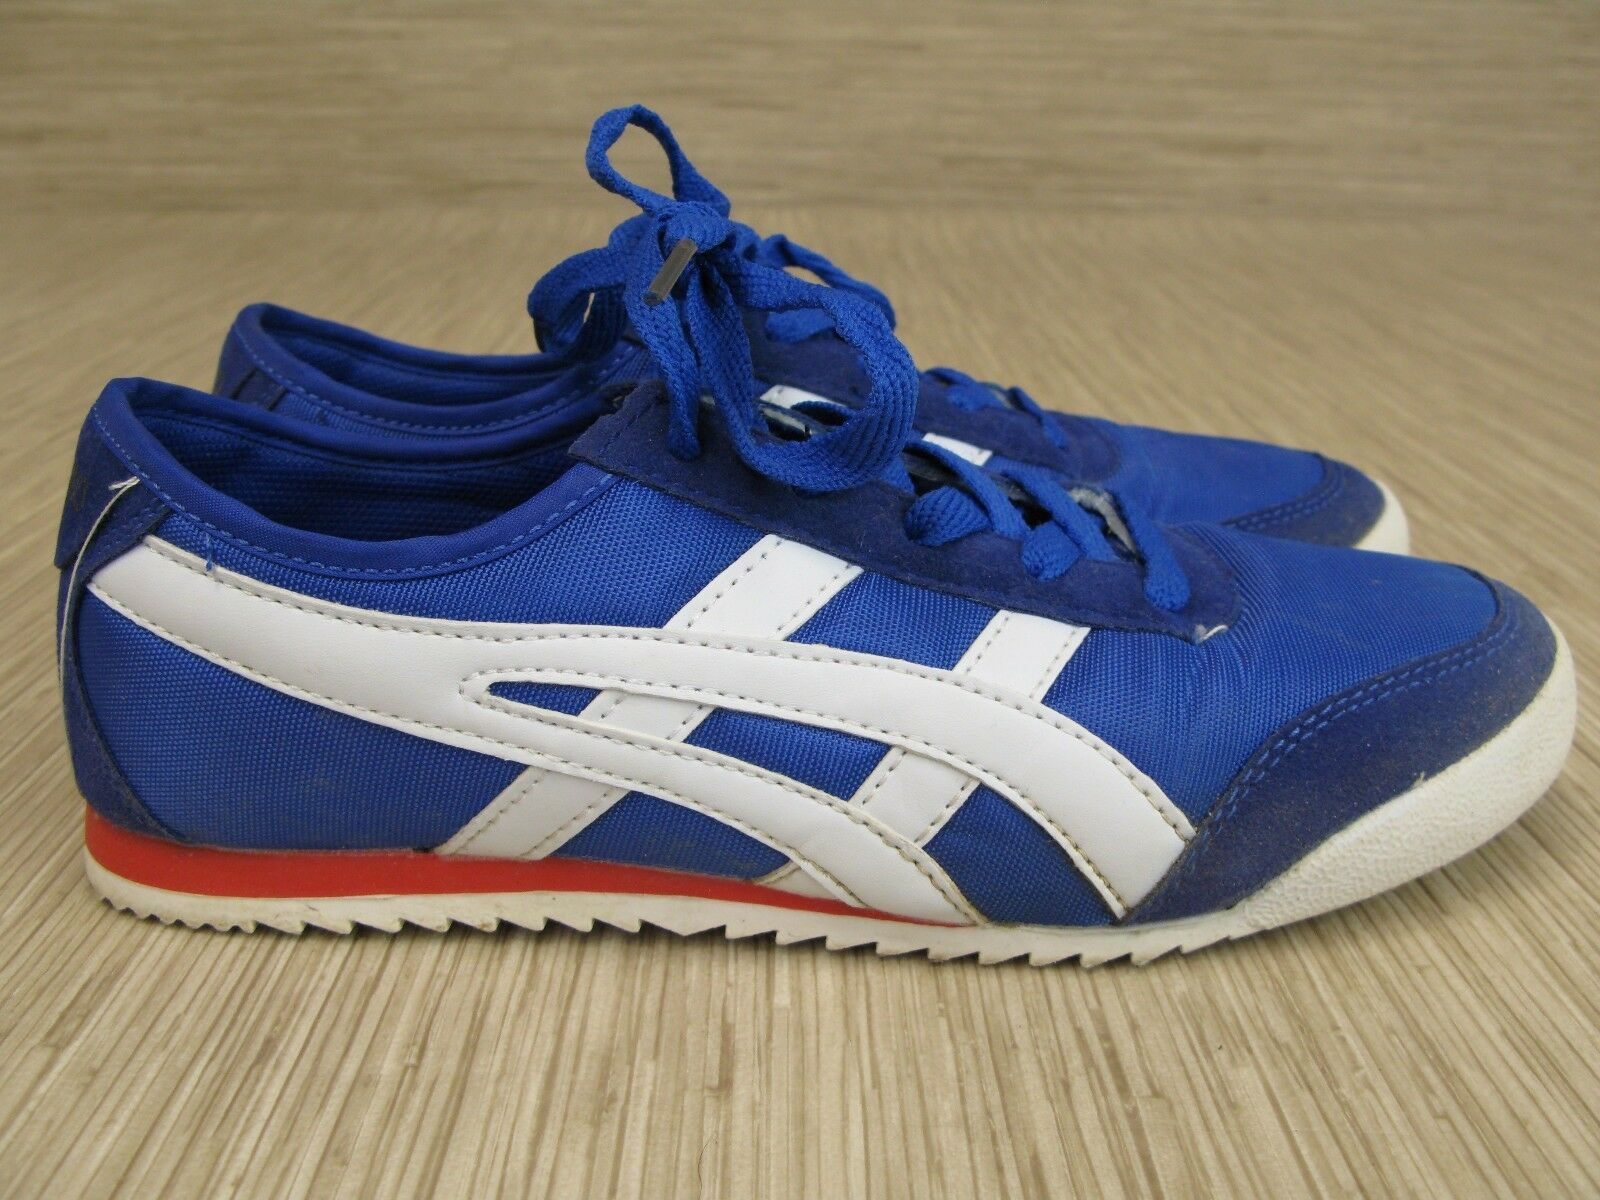 Onitsuka Yound bluee Synthetic shoes Women's Size US 9-10 Lace Up Athletic